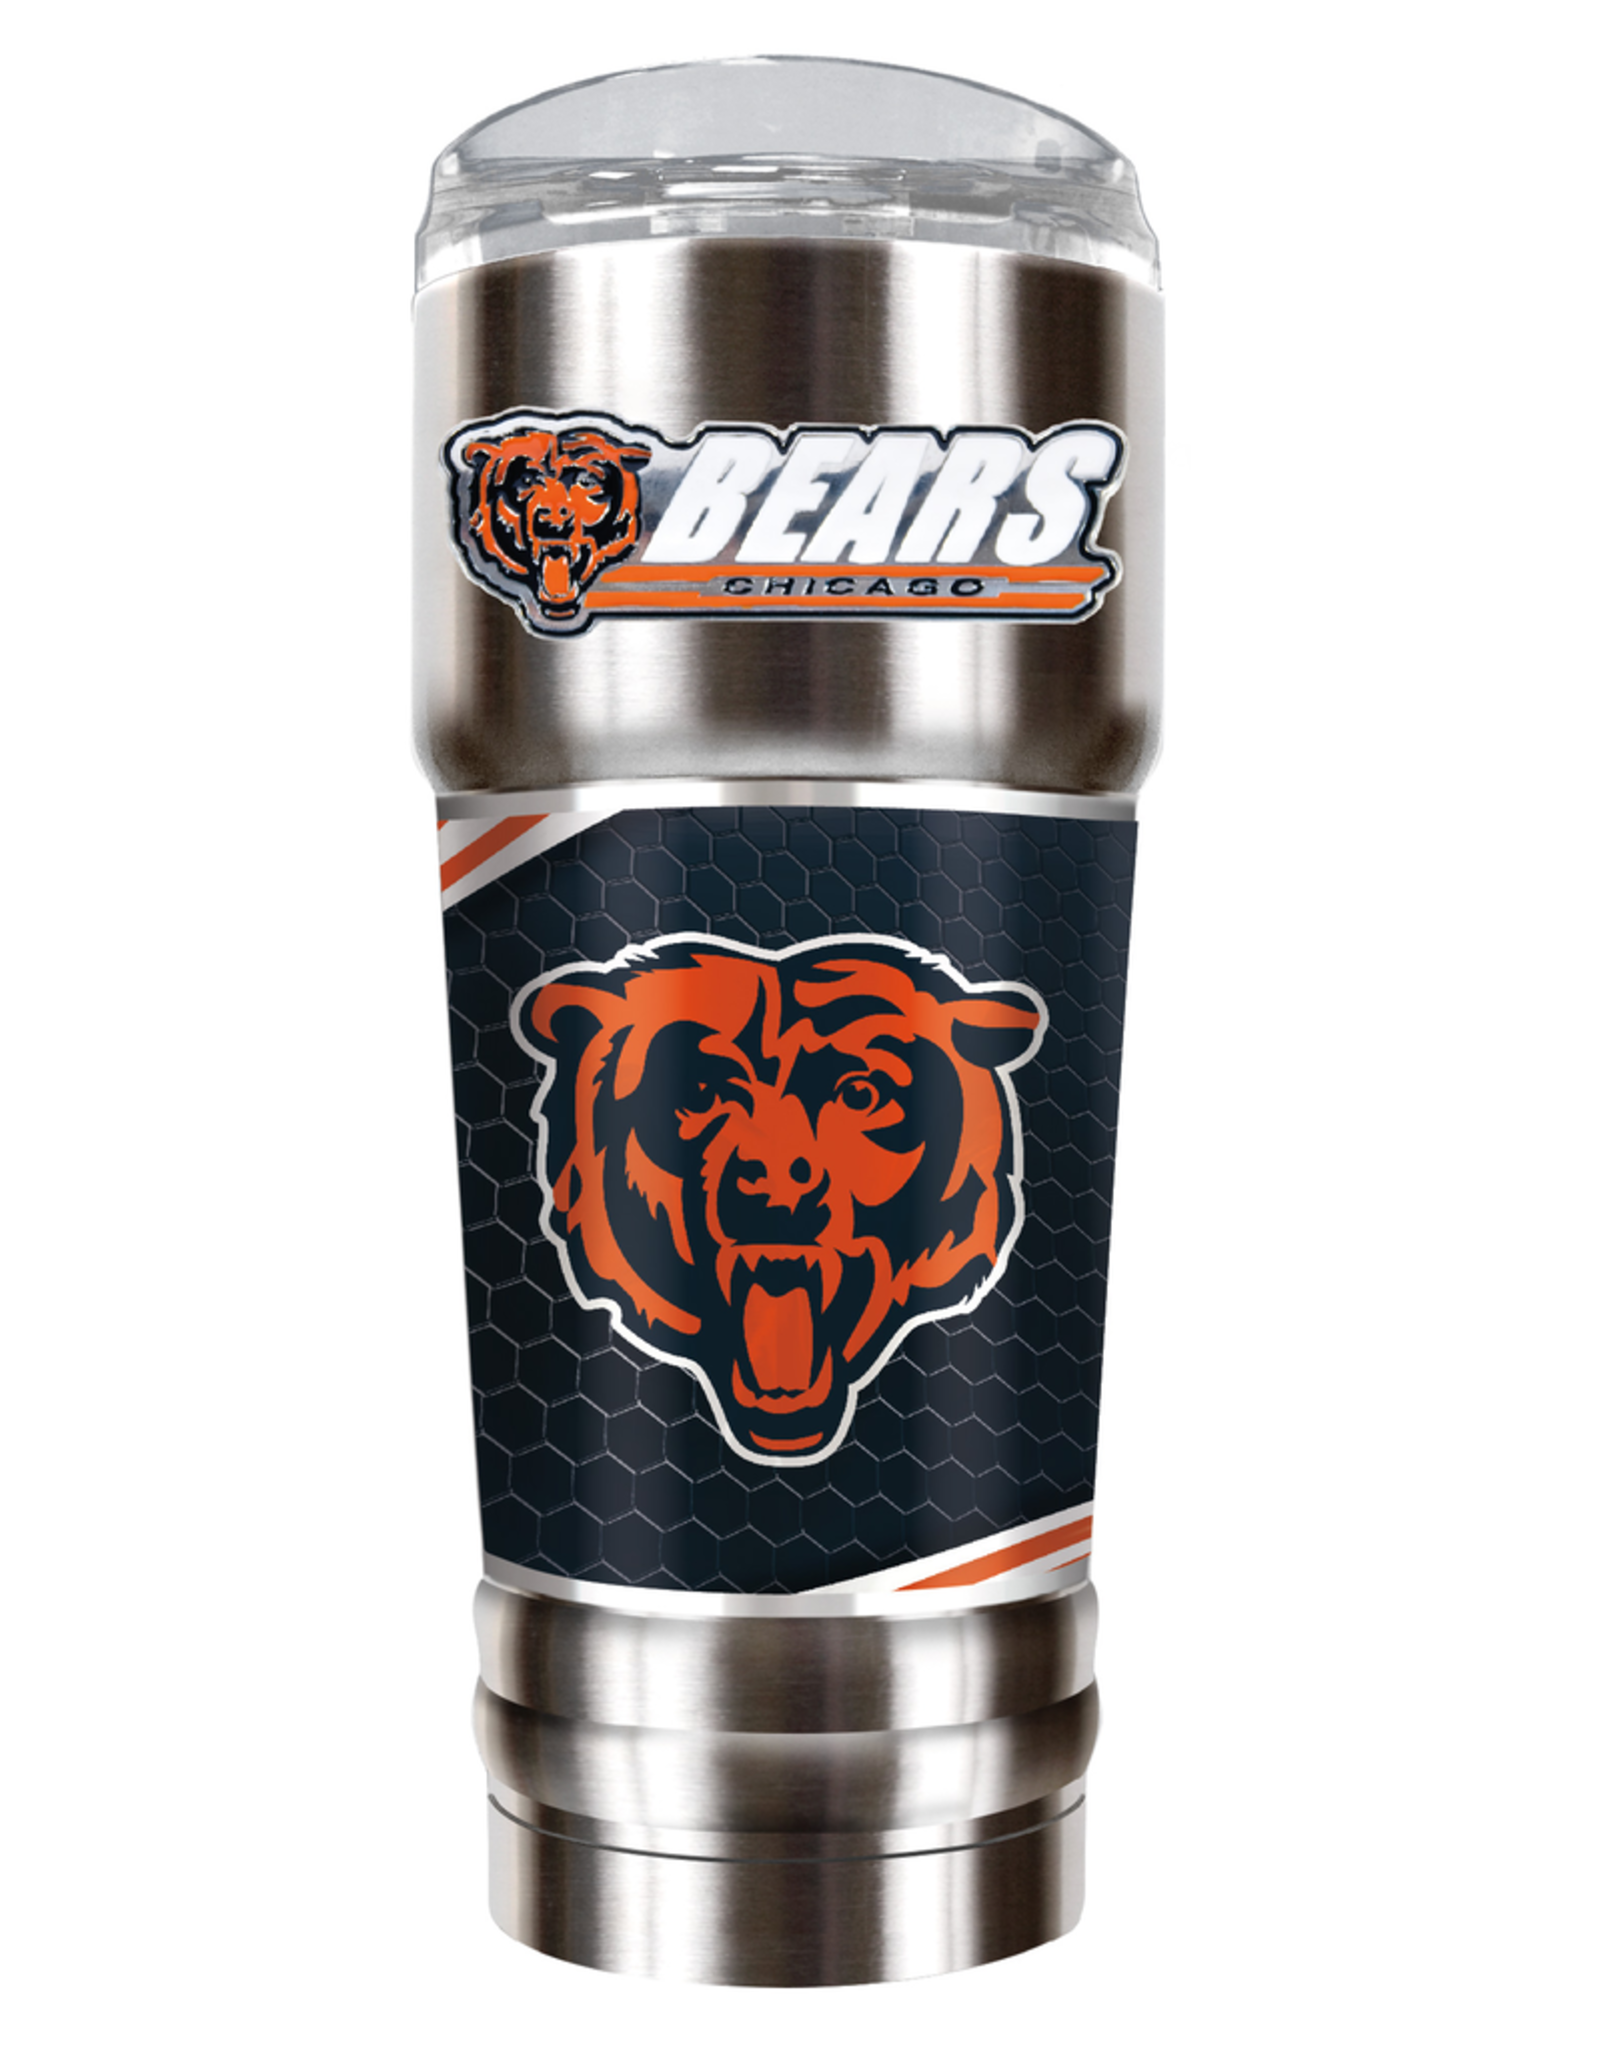 GREAT AMERICAN PRODUCTS Chicago Bears 32oz Stainless Steel PRO Tumbler